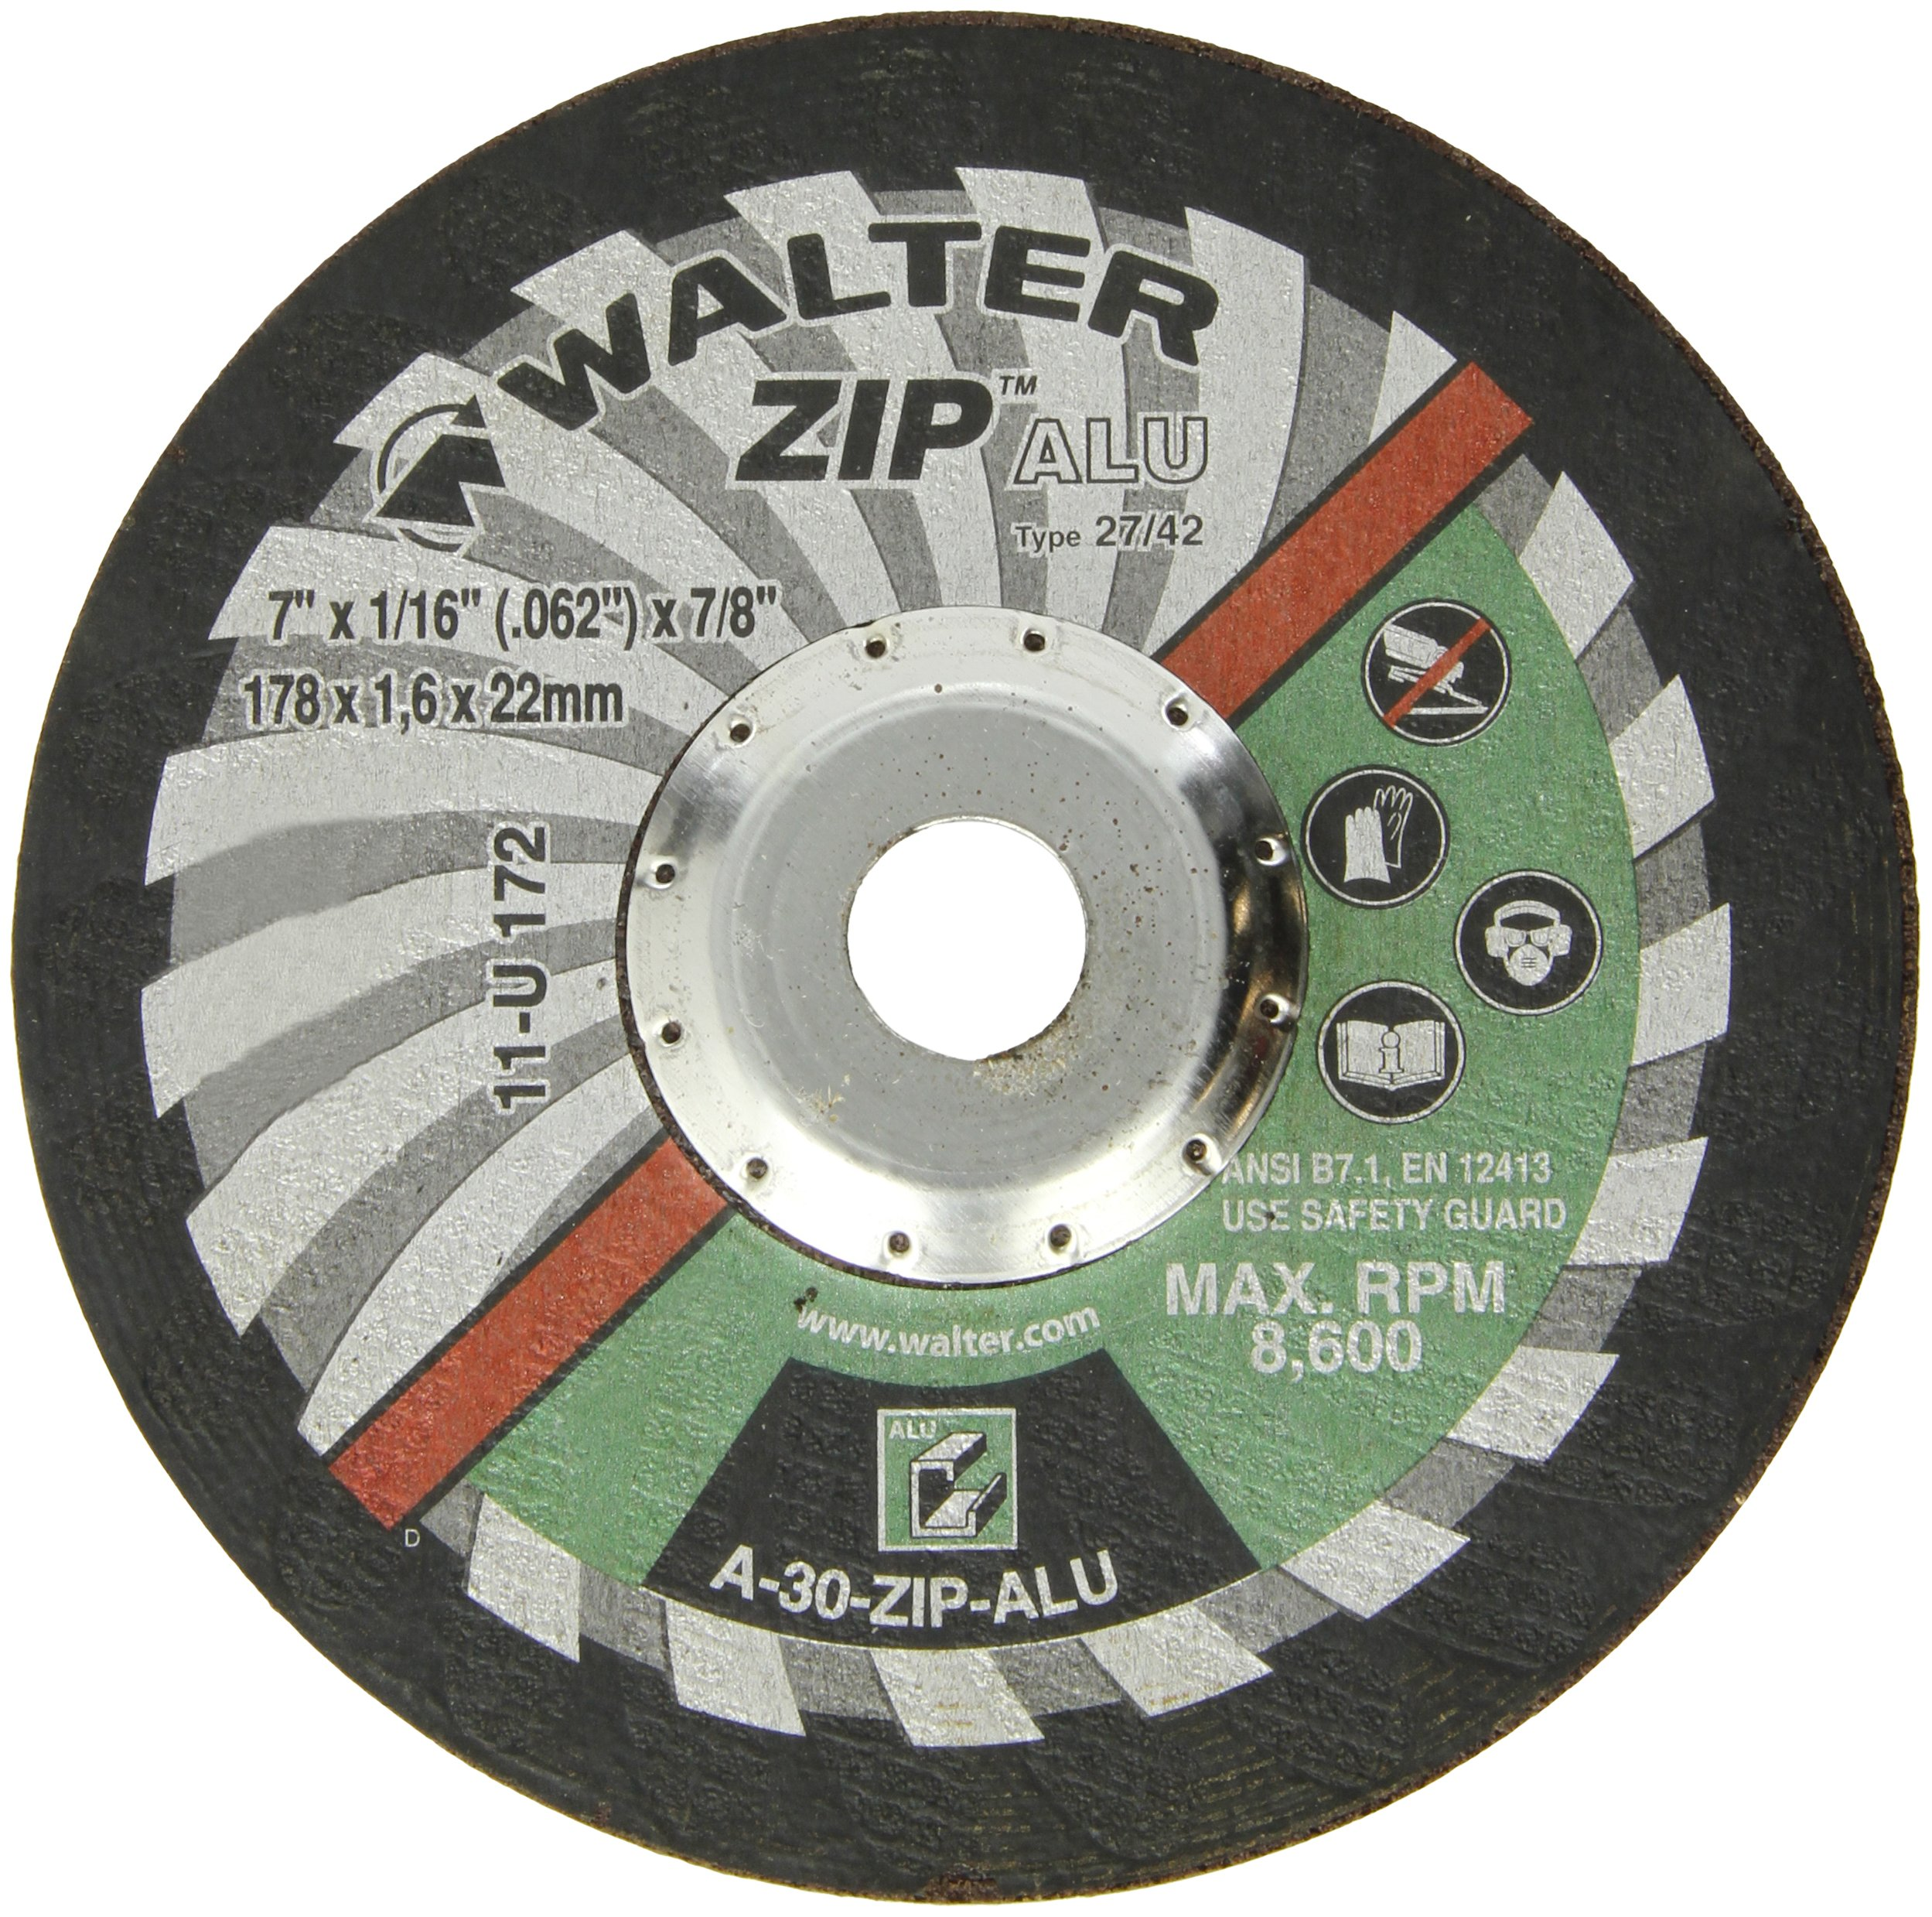 Walter ZIP Alu Fast and Free Cutoff Wheel, Type 27, Round Hole, Aluminum Oxide, 7'' Diameter, 1/16'' Thick, 7/8'' Arbor, Grit A-30-ZIP-ALU (Pack of 25)